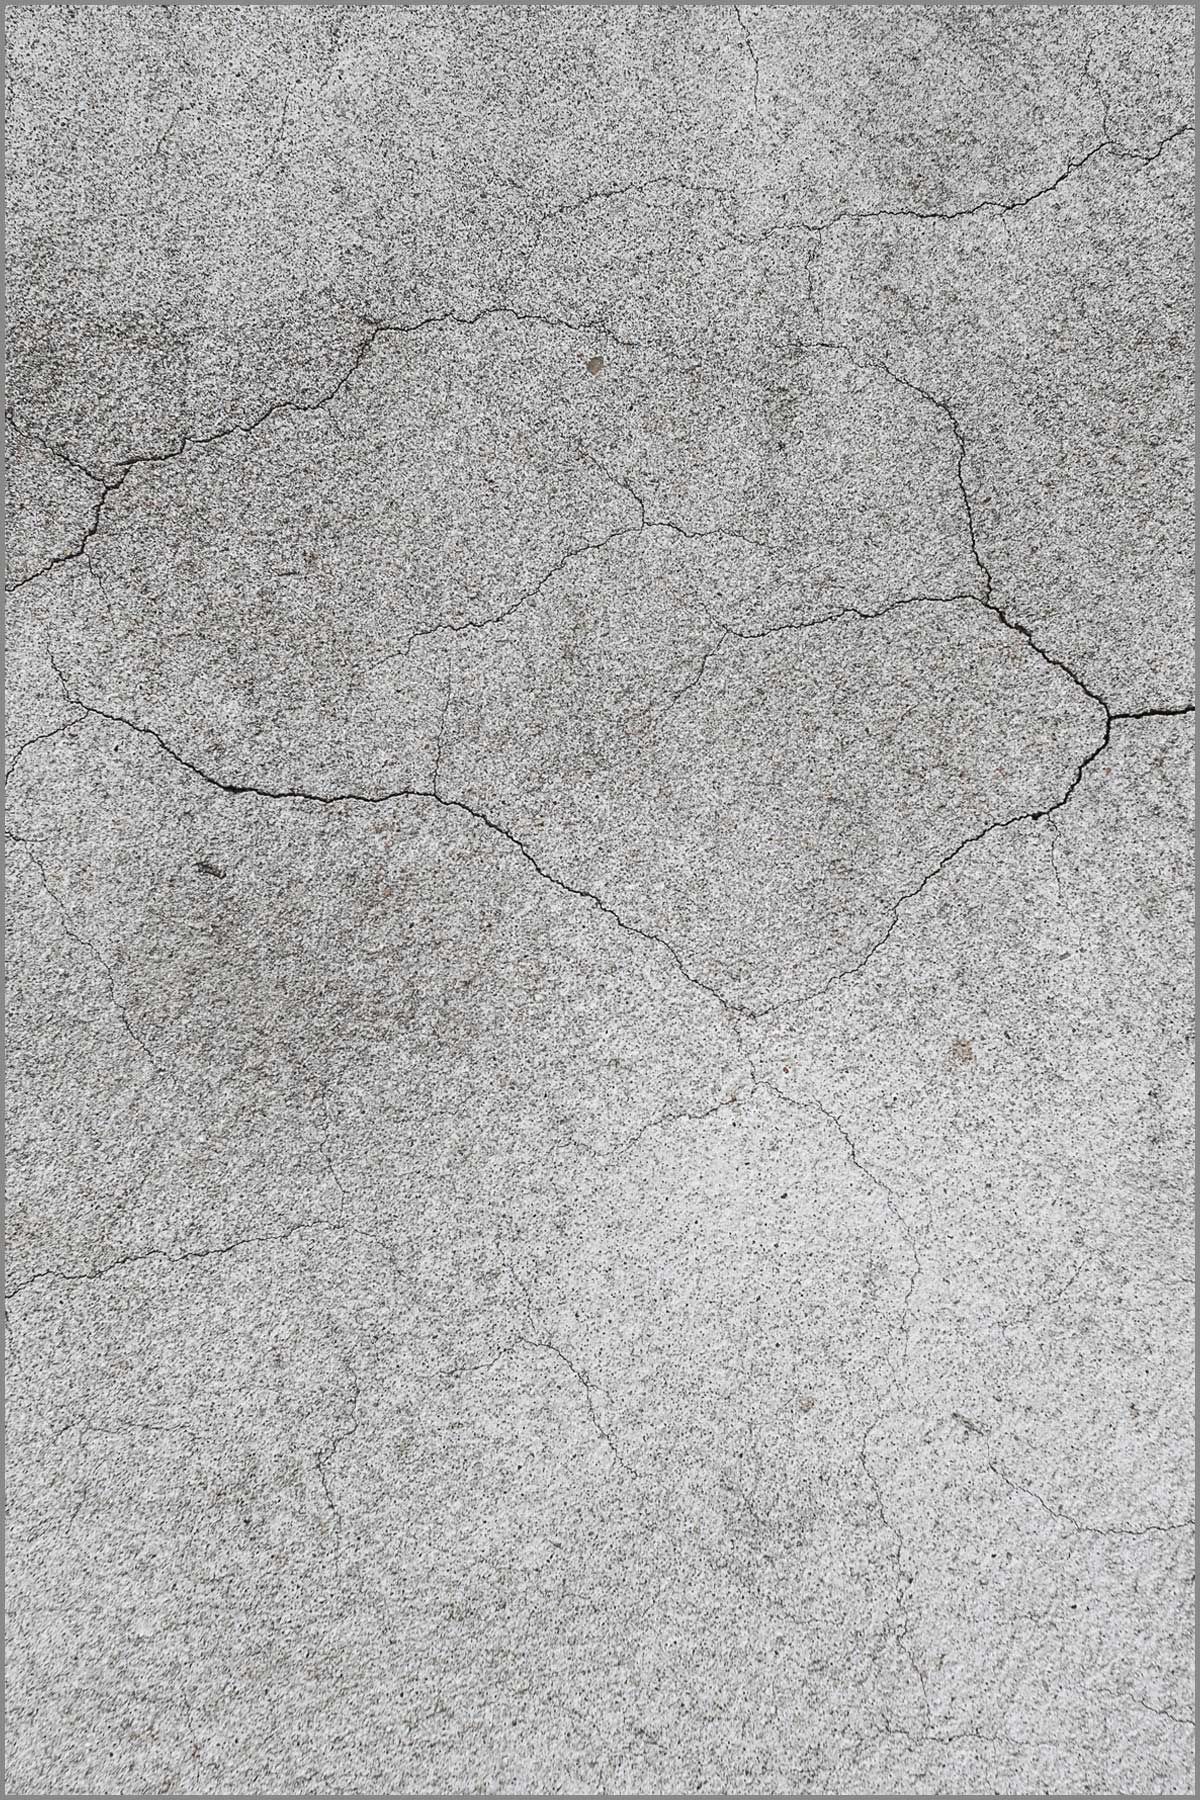 Cloverdale Paint Interior Concrete Garage Floors